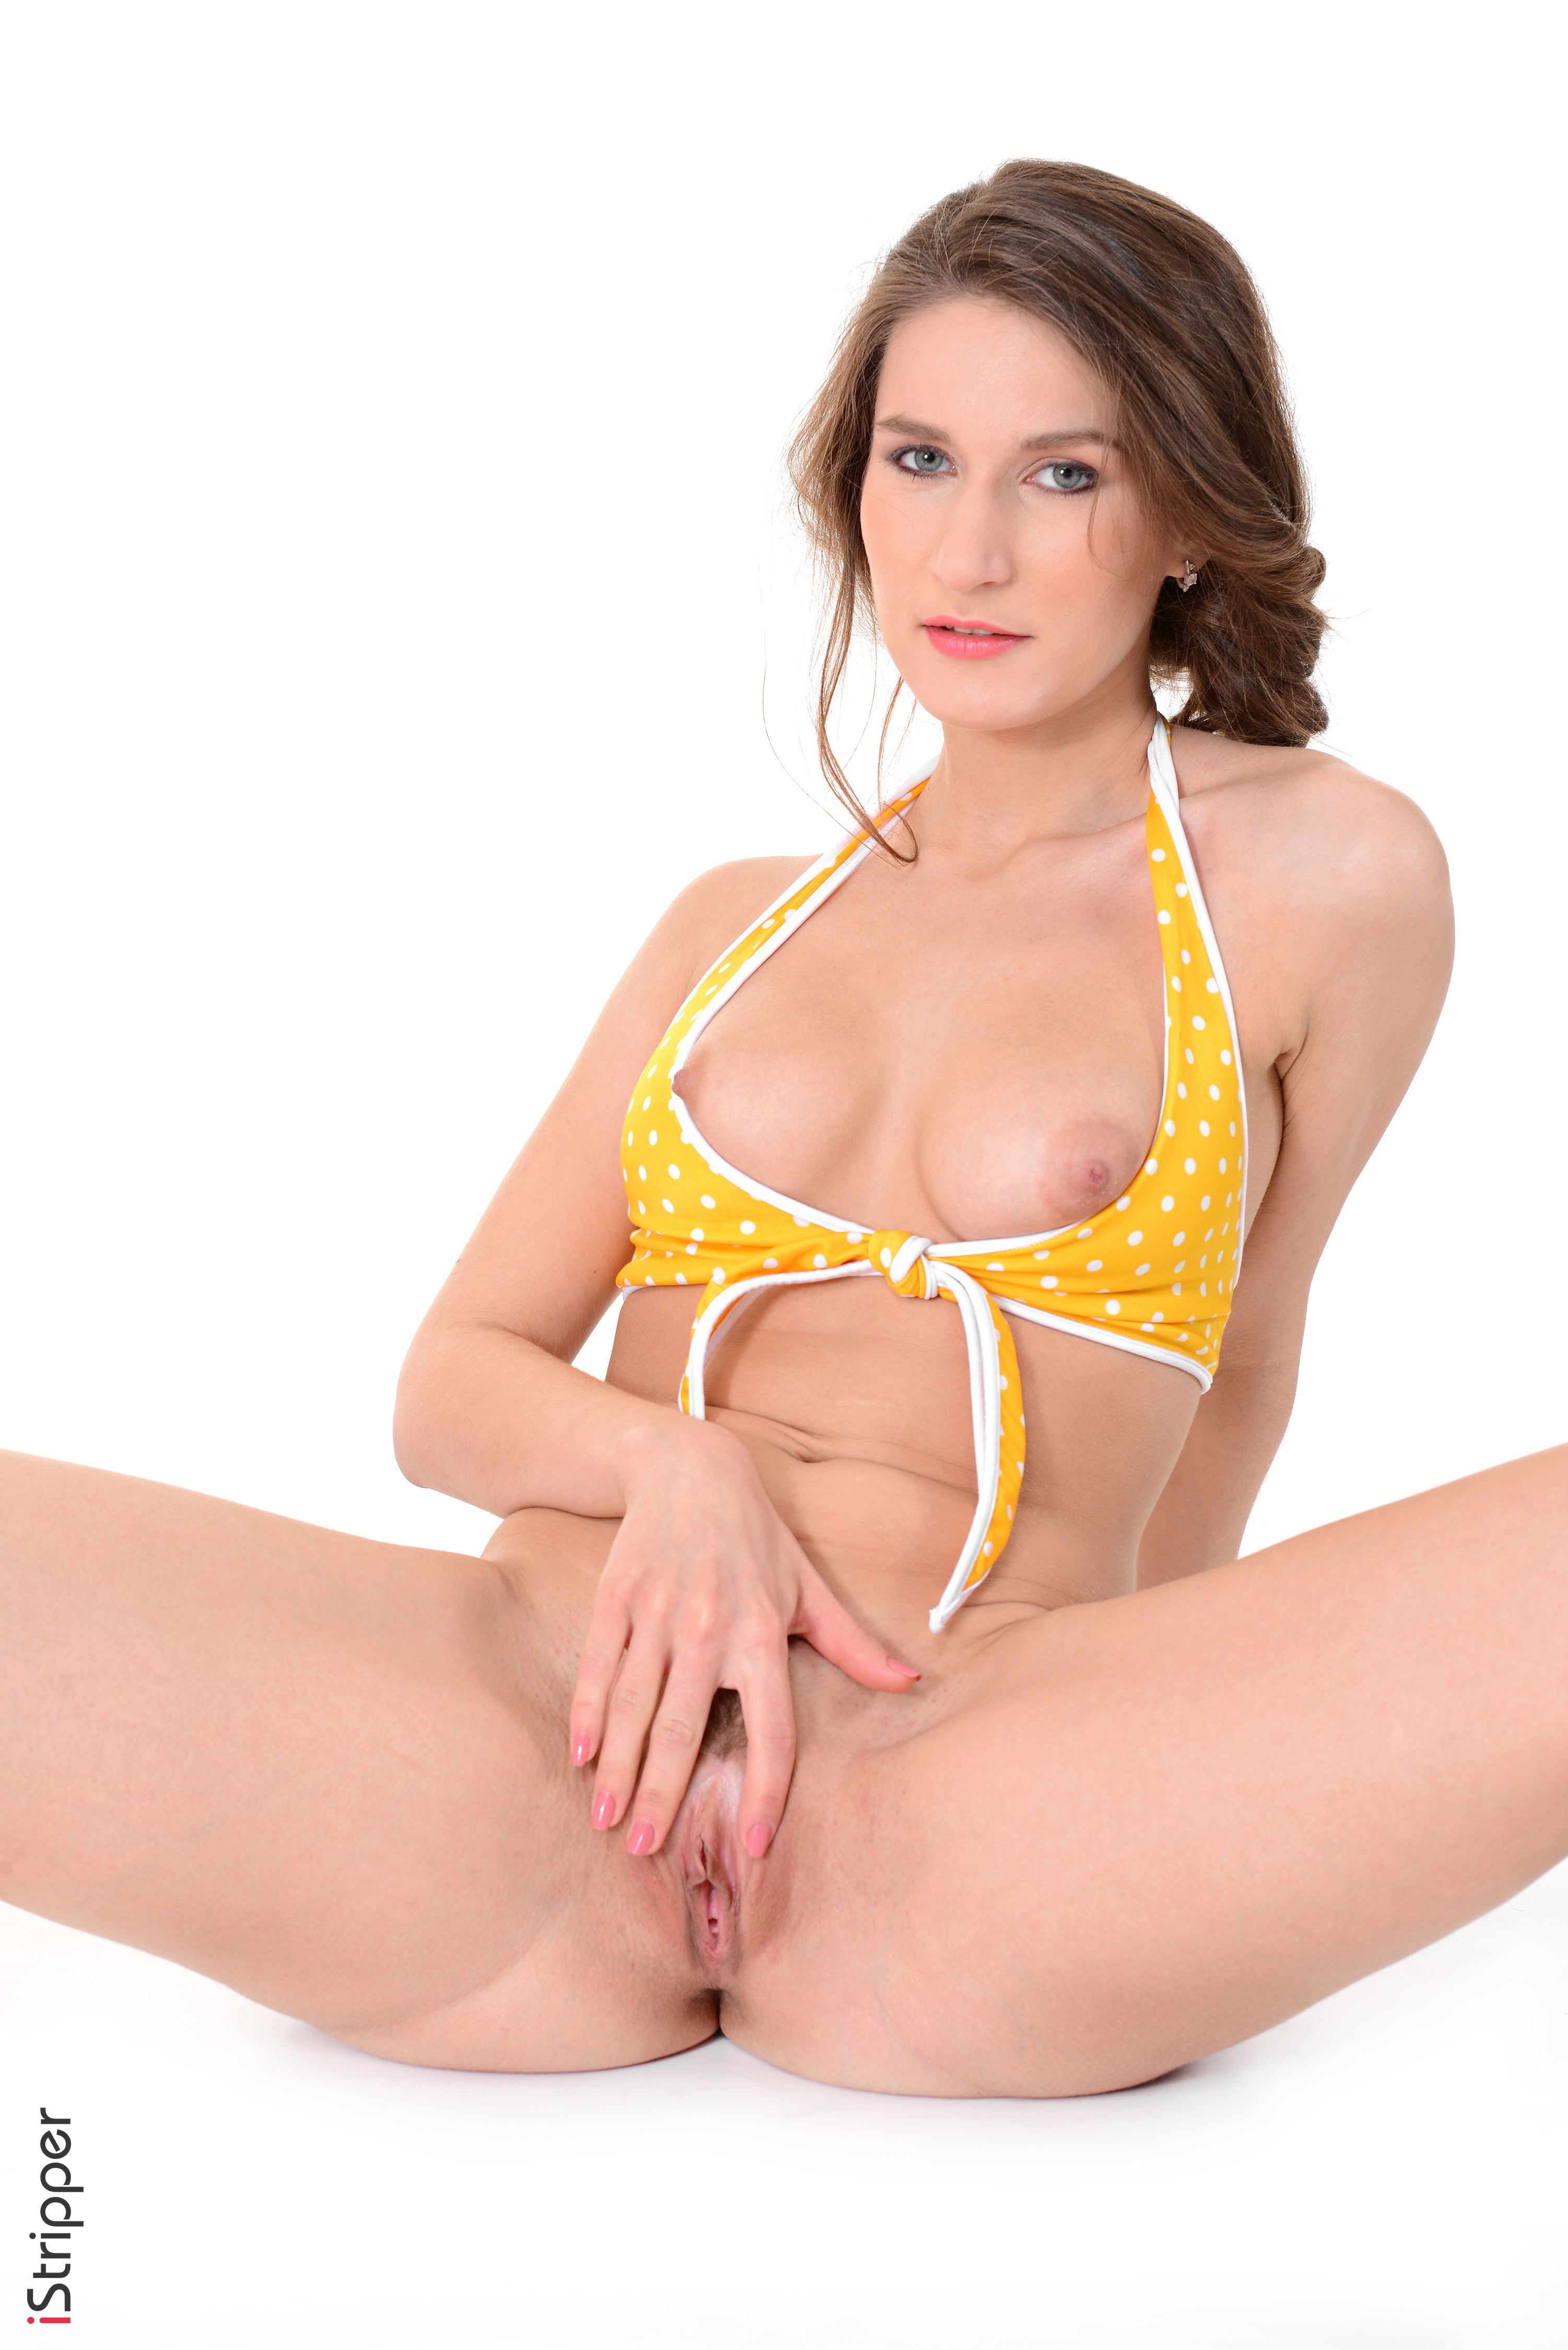 naked hot girls wallpapers